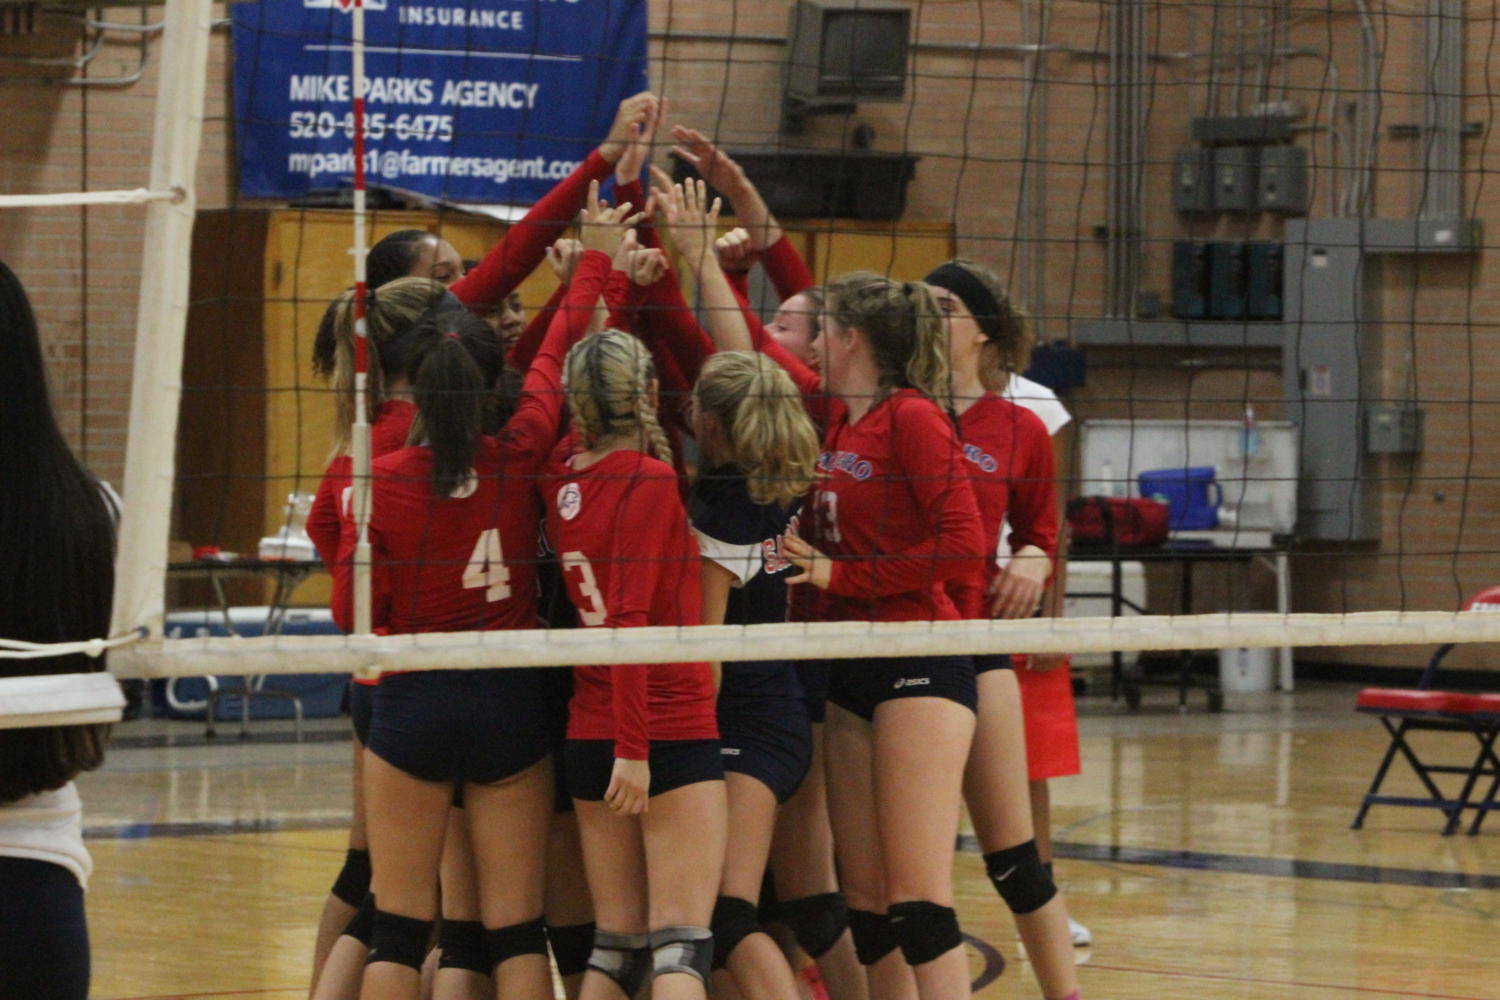 Volleyball: Serves Up!